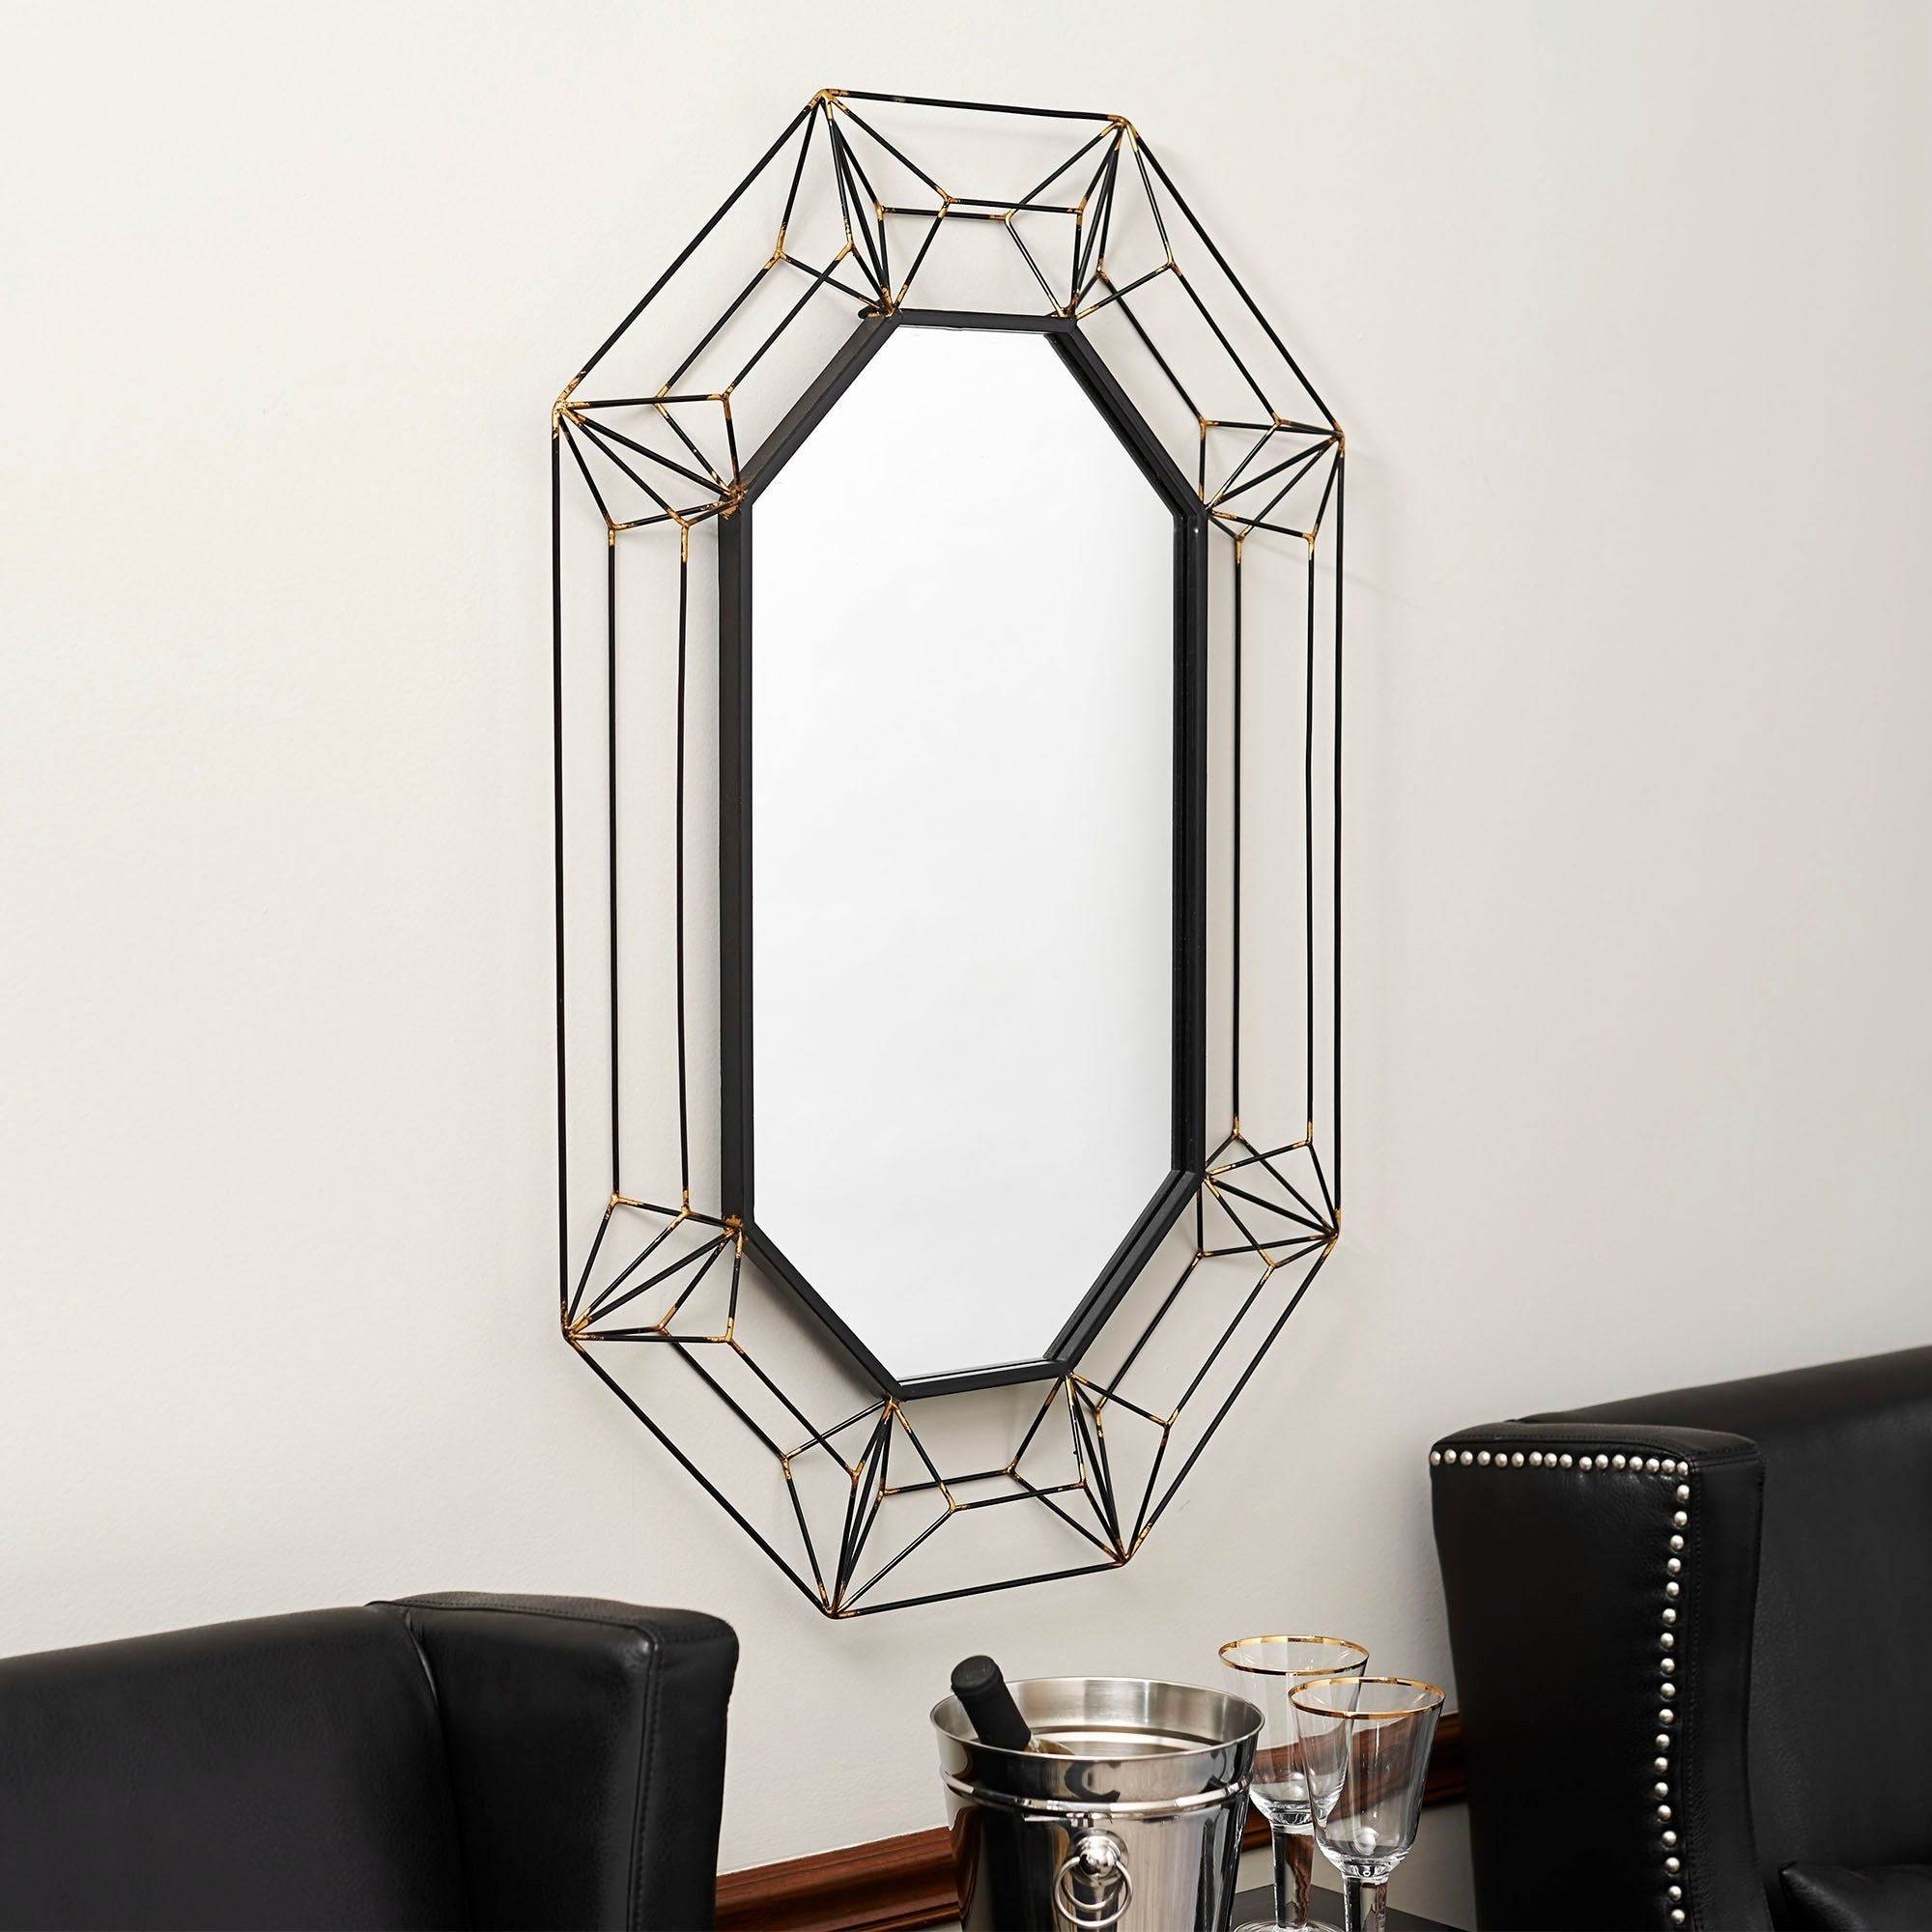 Most Recent Large Black Framed Wall Mirrors Inside Household Essentials Large Wire Frame Wall Mirror – Black/gold (View 12 of 20)